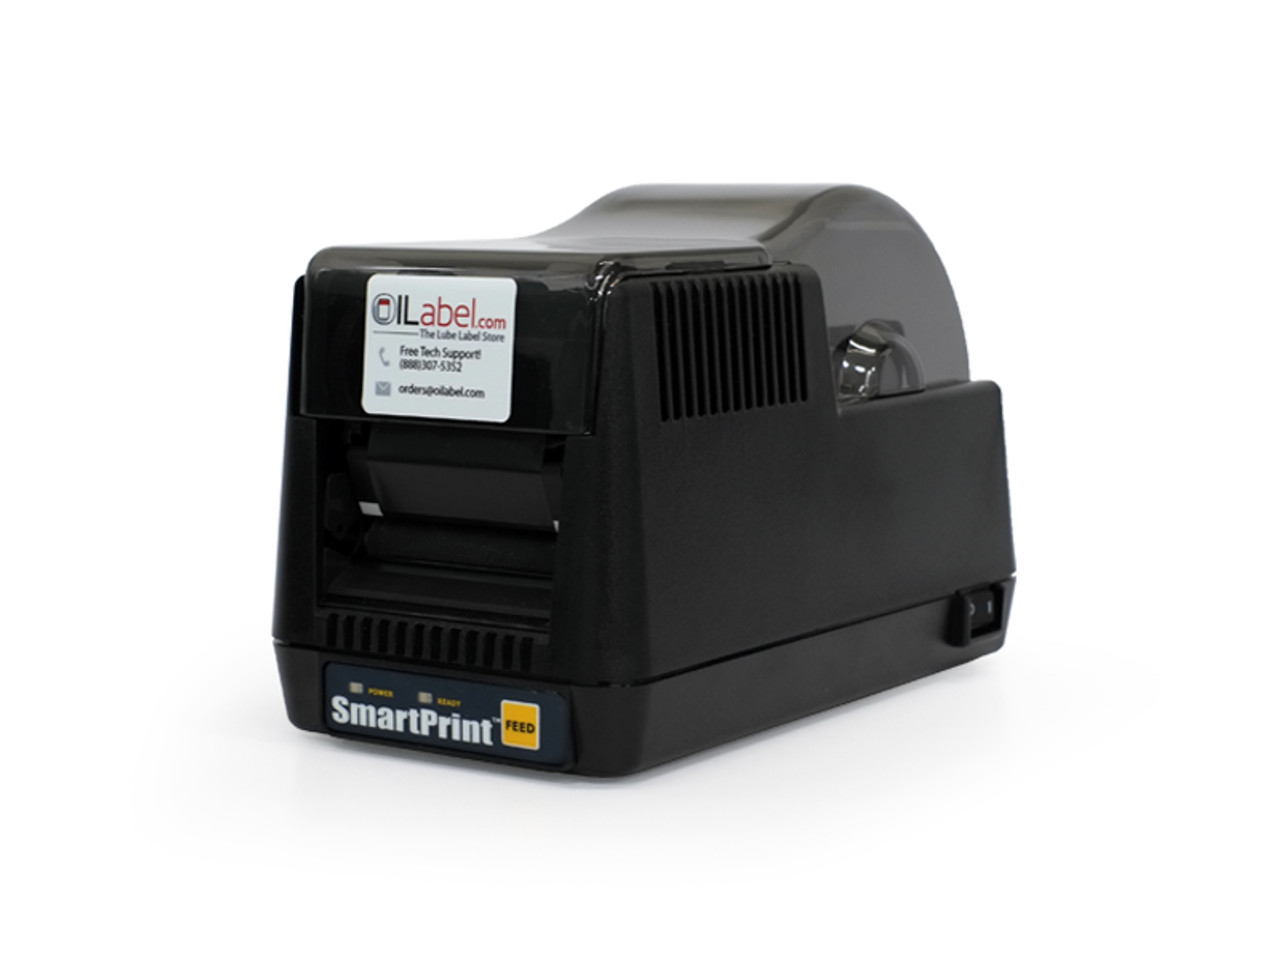 The reliability and durability of this printer is unmatched - many of our customers have used their current printer for over 10 years.